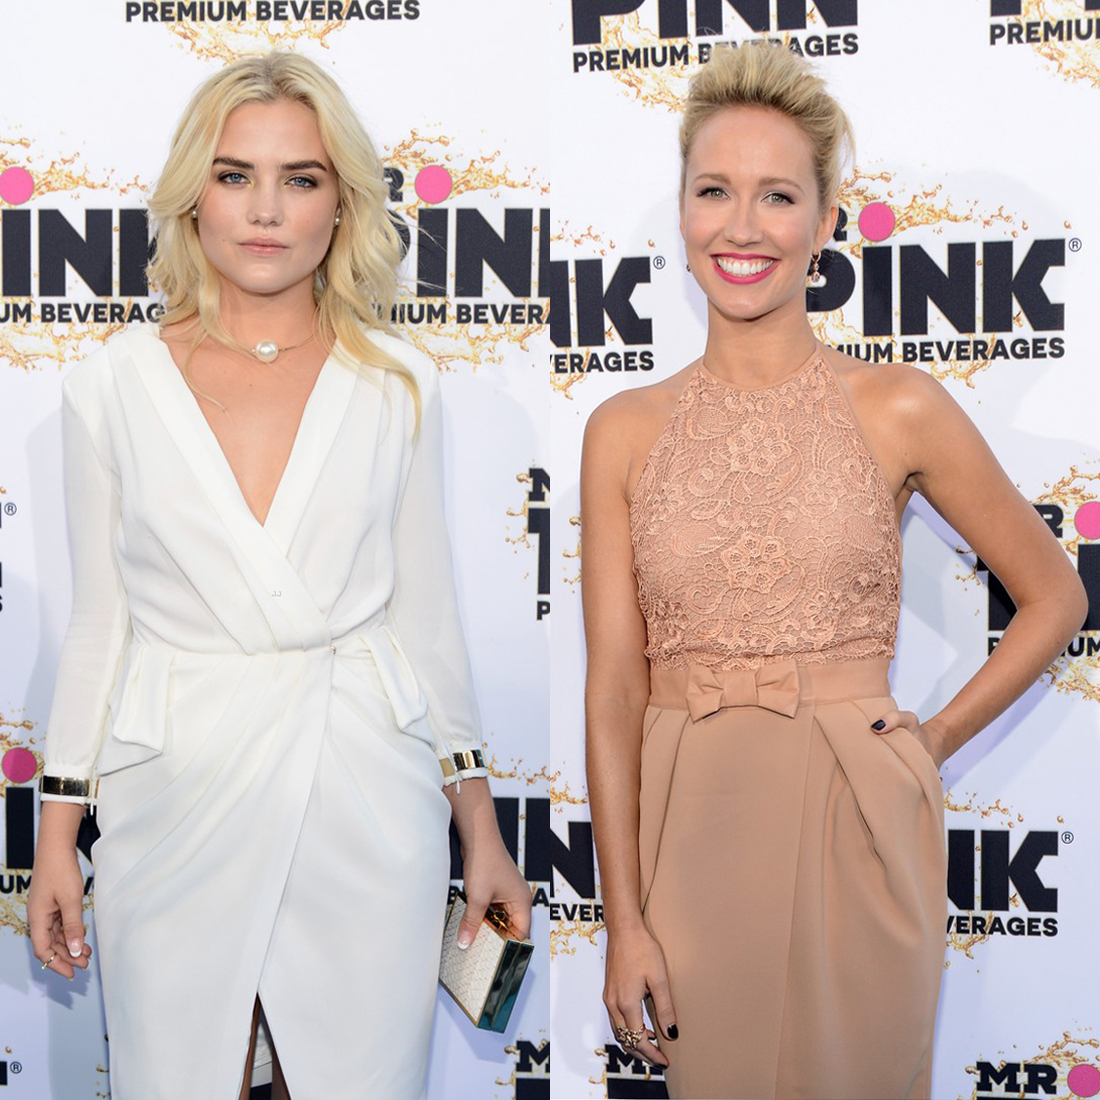 ANNA_CAMP_MADDIE_HASSON_in_Elisabetta_Franchi_2014_Young_Hollywood_Awards